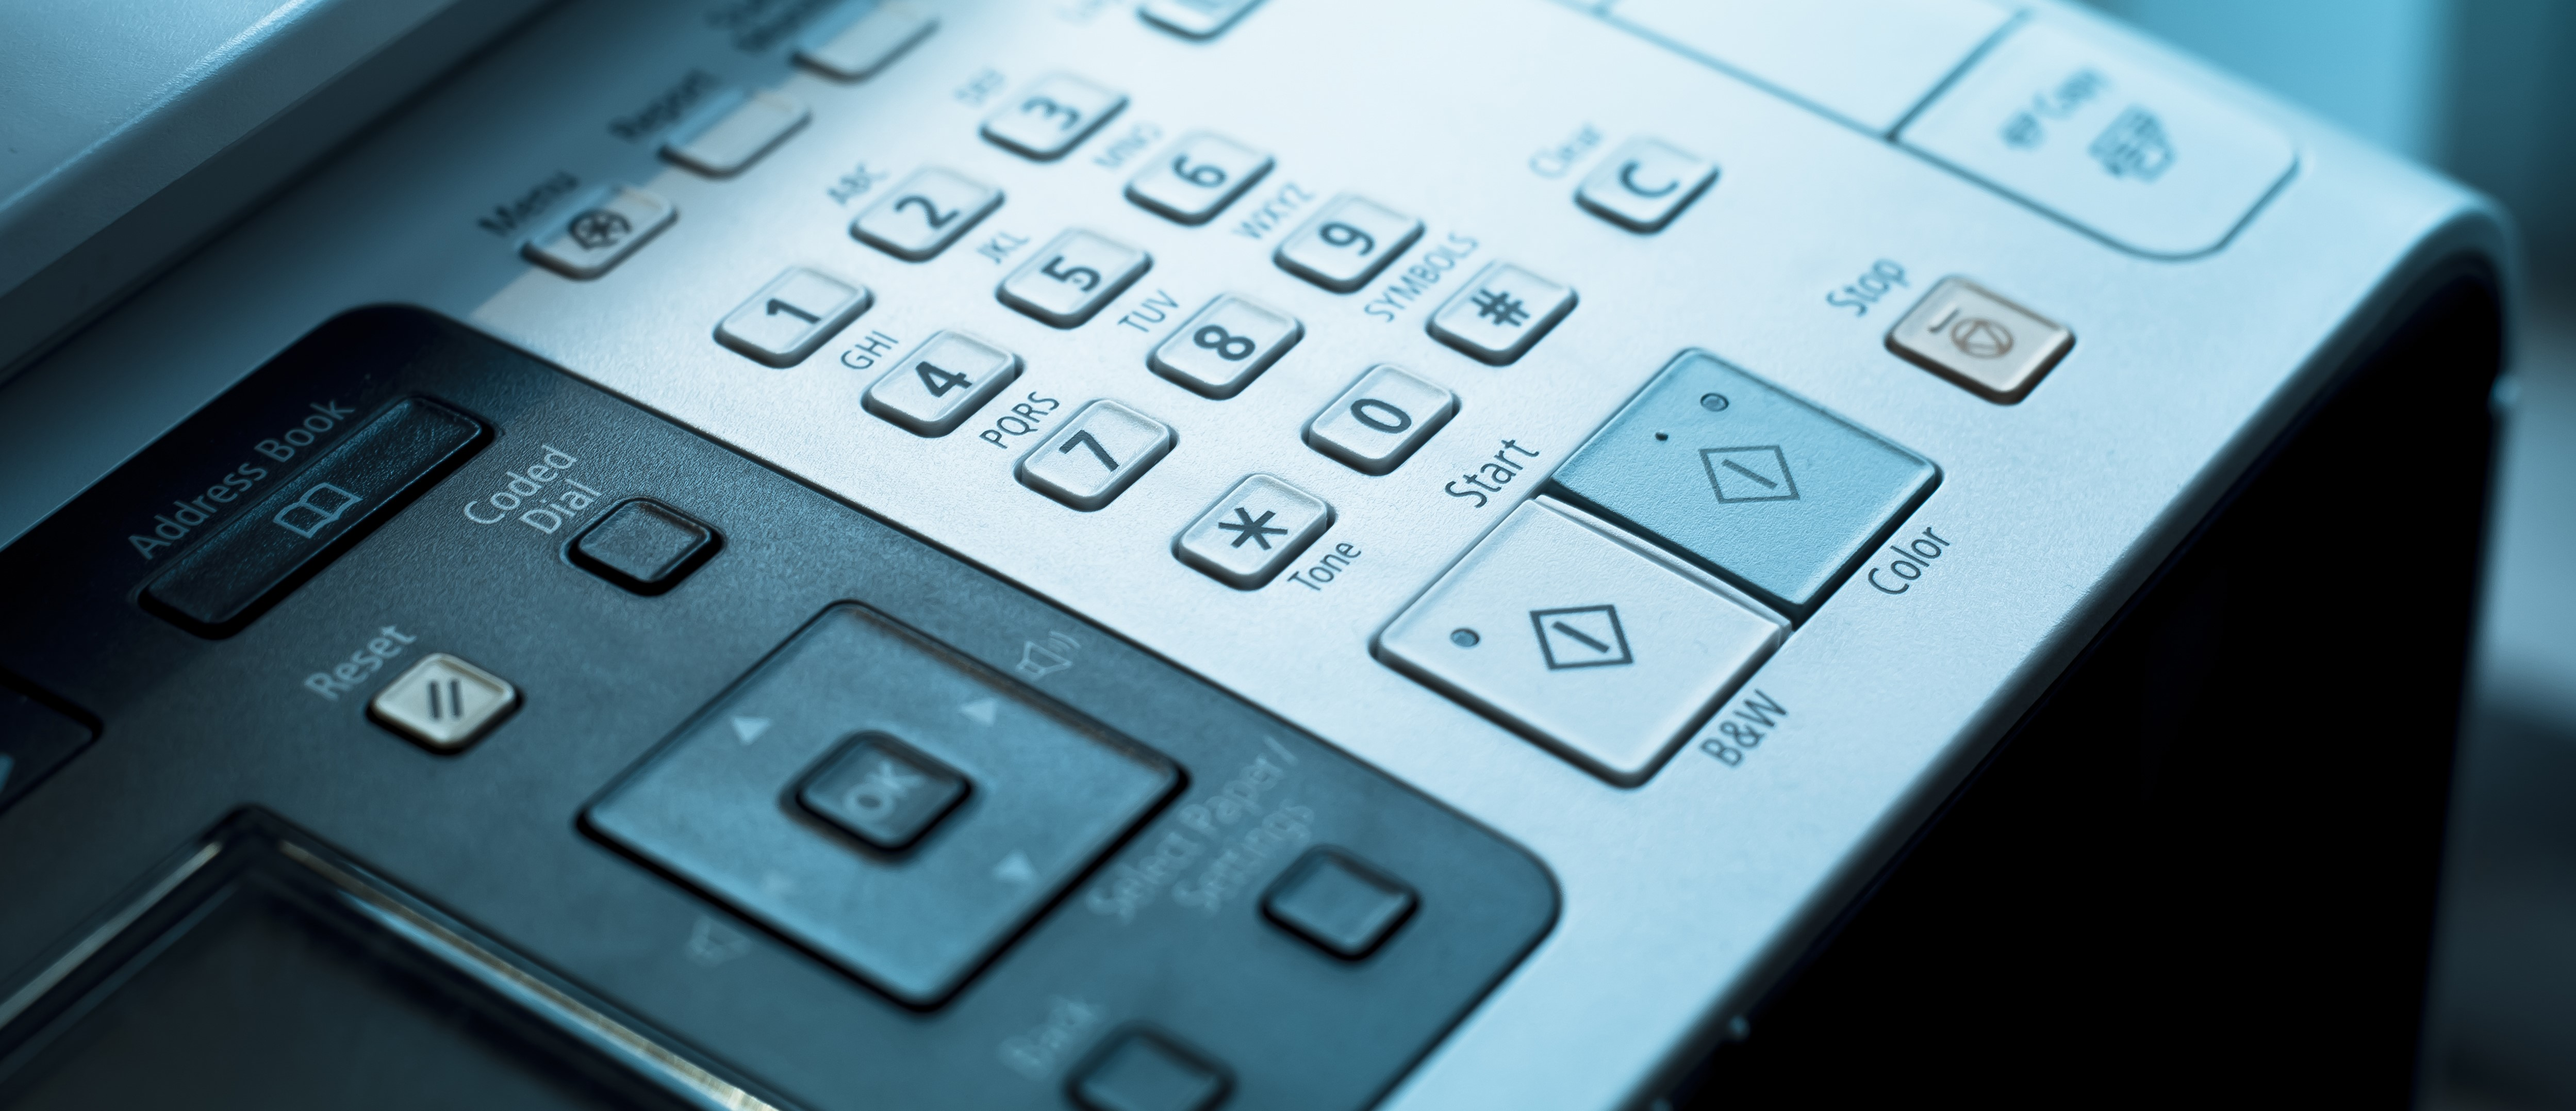 Fax machines from LaserCycle USA